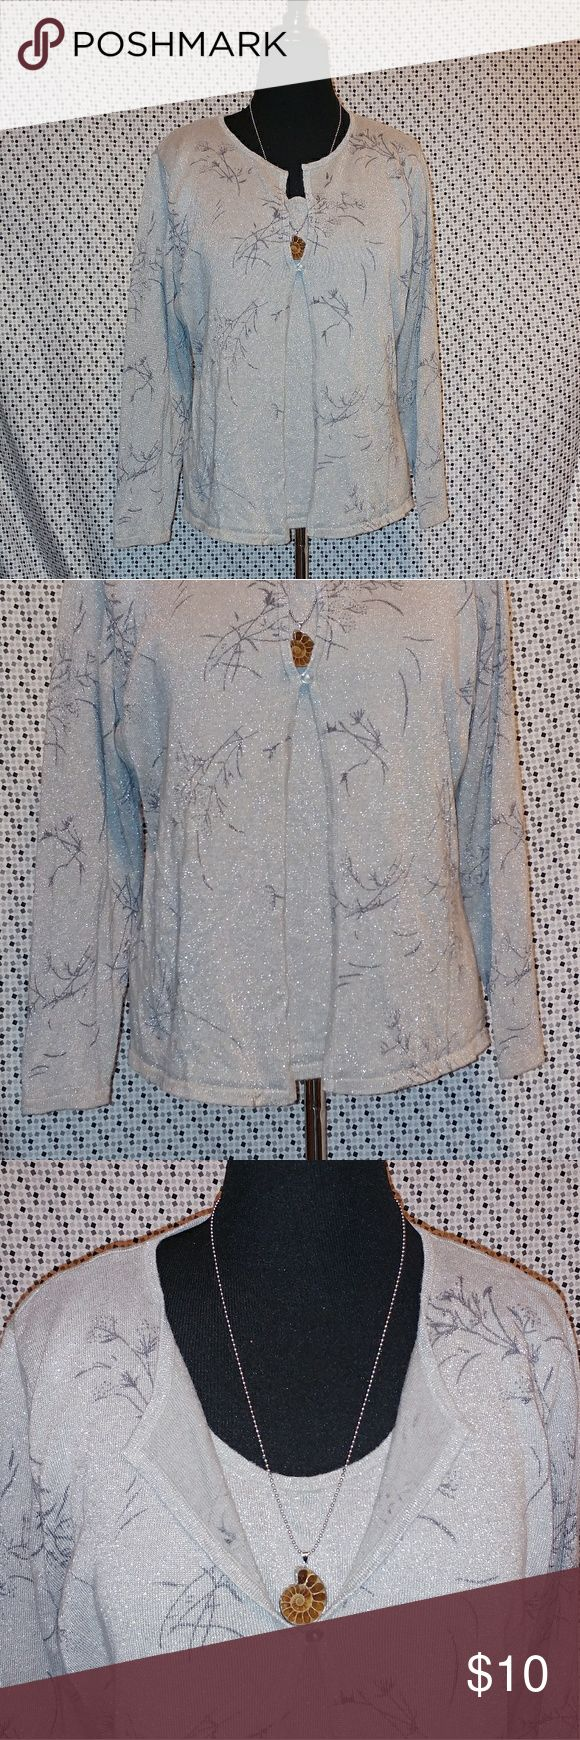 PLUS SIZE! Silver Cardigan Blouse w/ Built-in Cami EUC! Beautiful silver shimmer - perfect for the holidays. Smoke free home. John Paul Richard Sweaters Cardigans